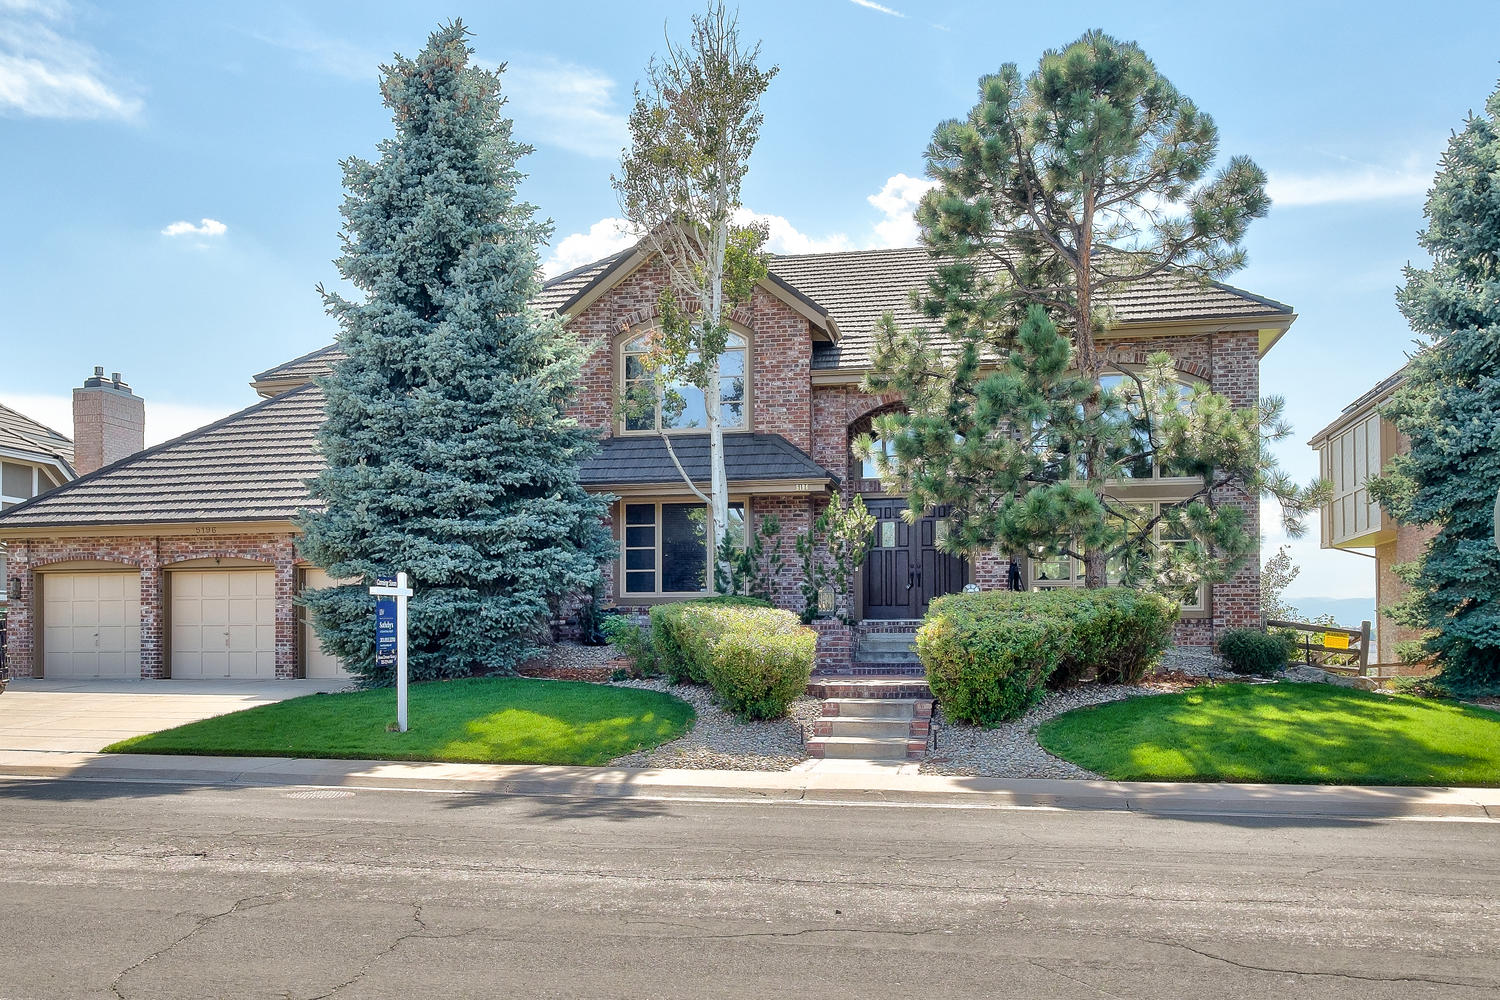 Single Family Home for Sale at Heritage Greens 5196 E Otero Circle Centennial, Colorado, 80122 United States